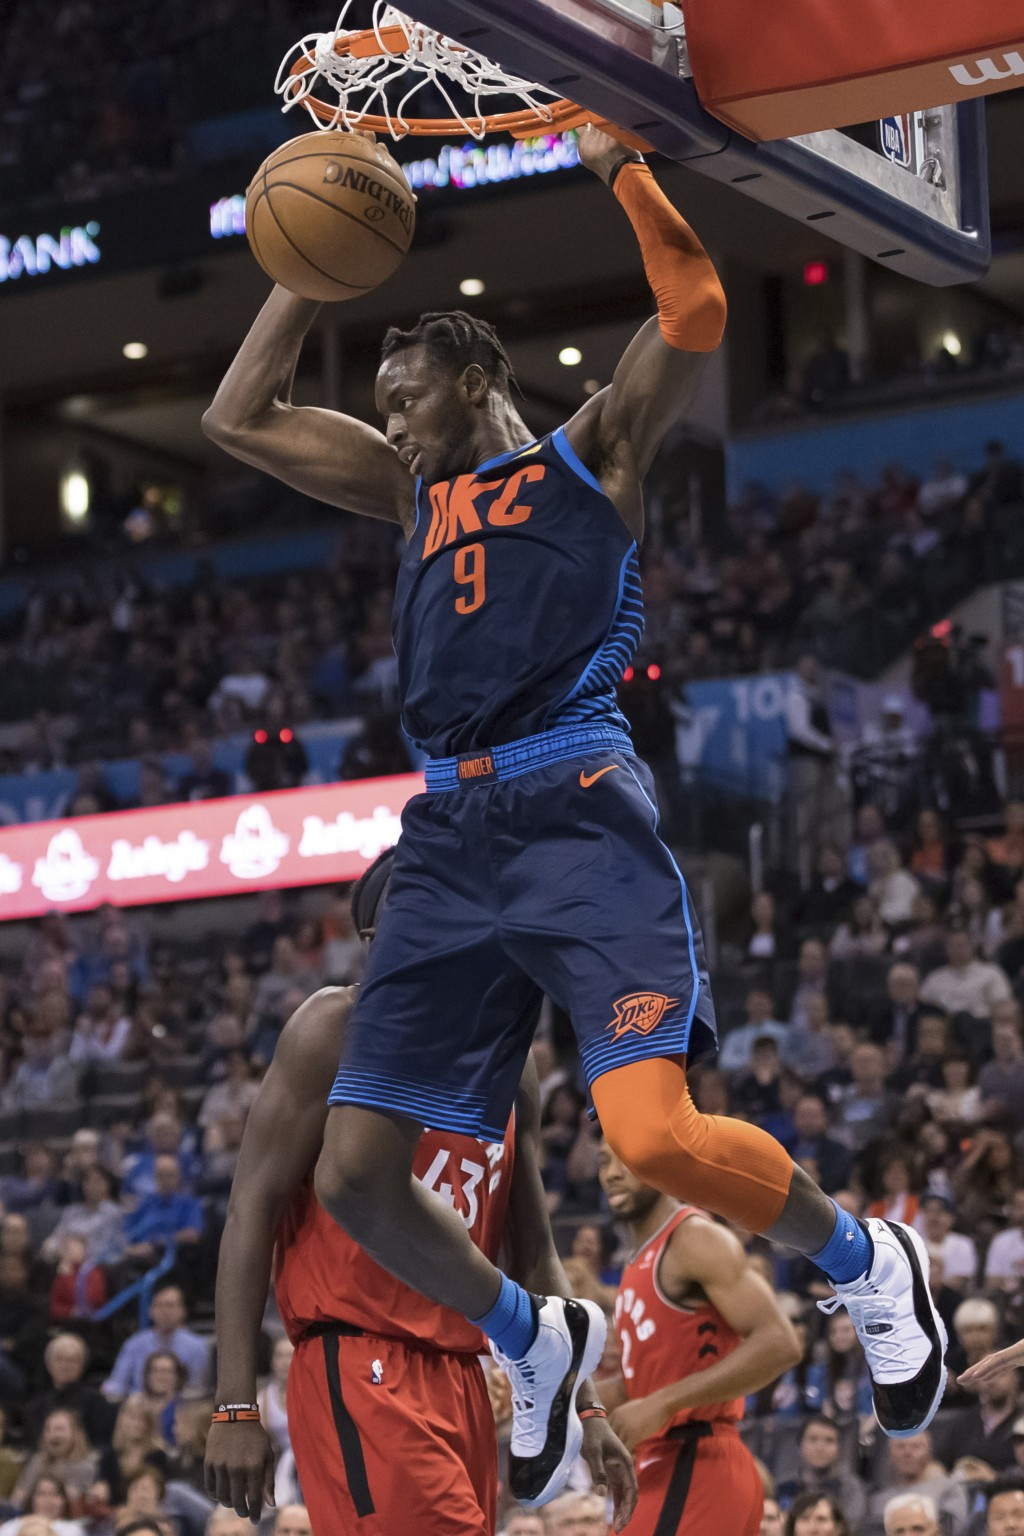 Oklahoma City Thunder forward Jerami Grant dunks against the Toronto Raptors during the second half of an NBA basketball game Wednesday, March 20, 201...